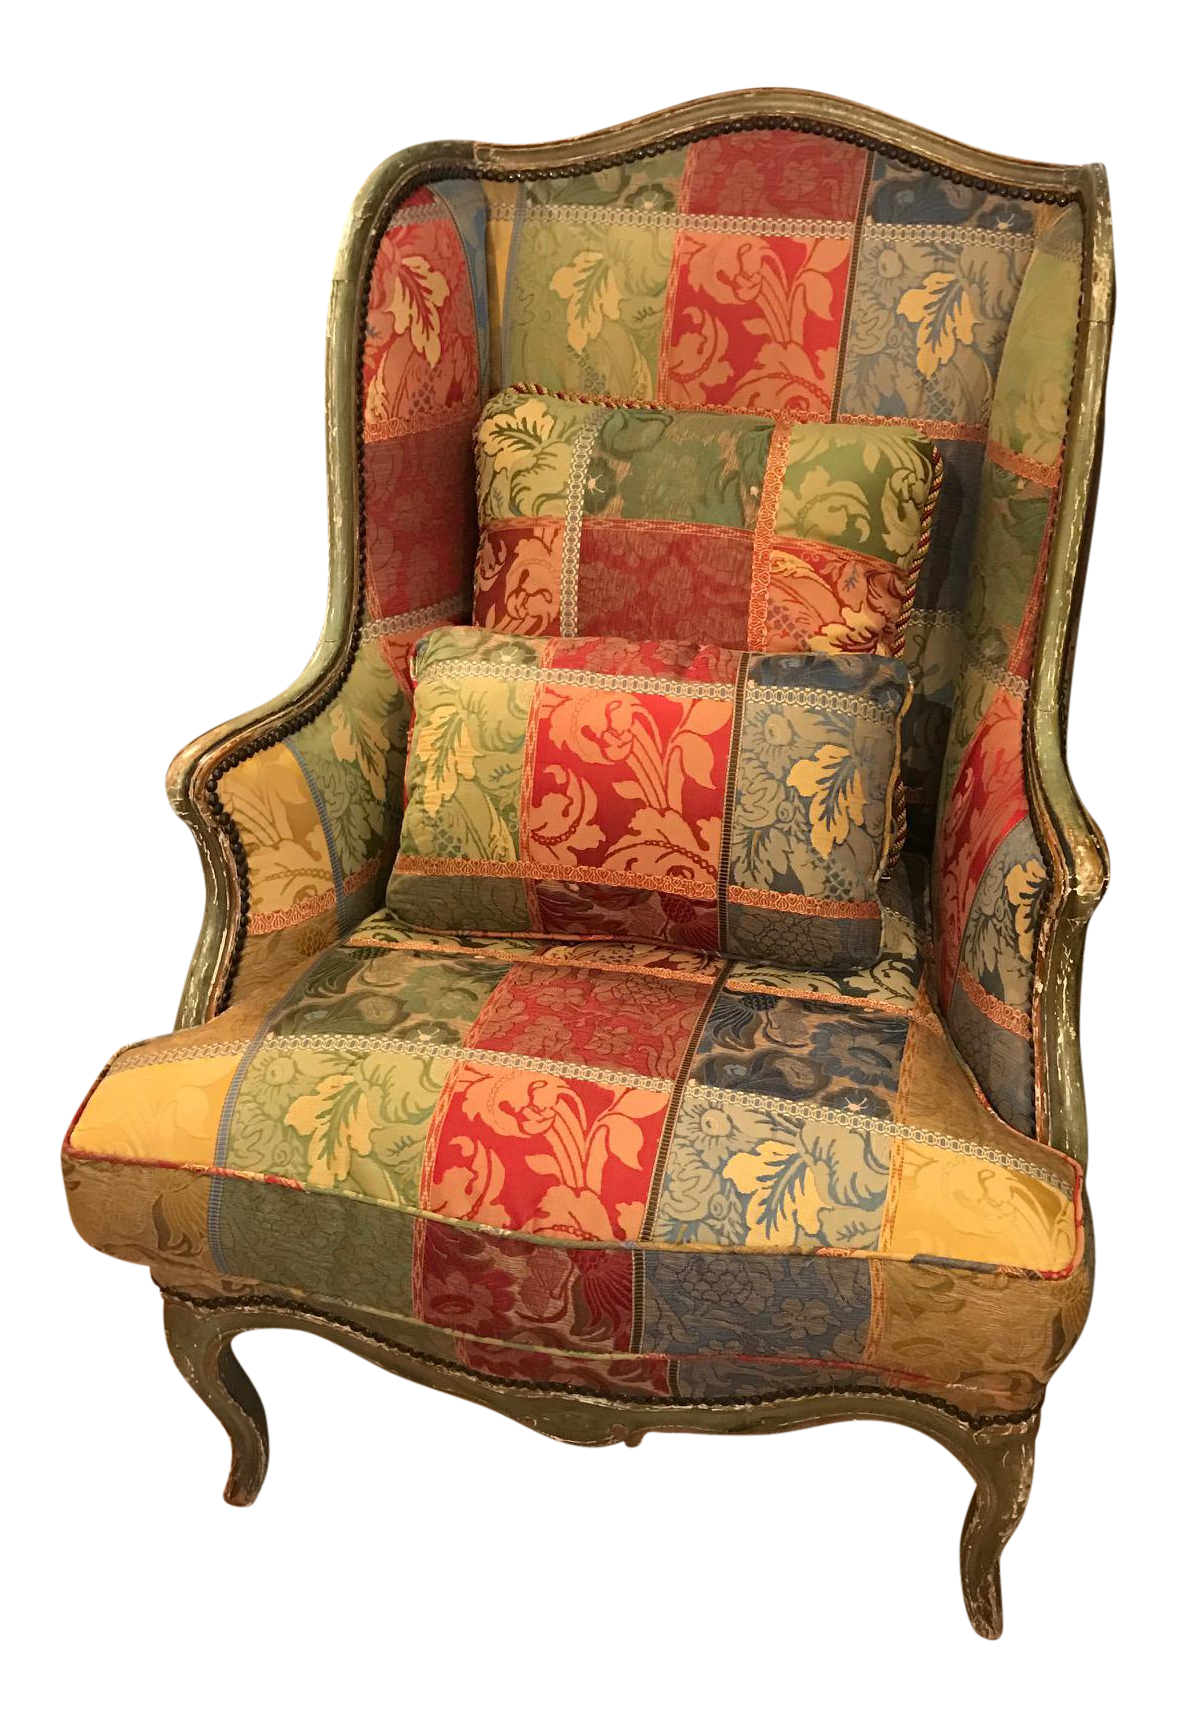 Antique wing chair - Image Of Wonderful Large Antique Wing Chair